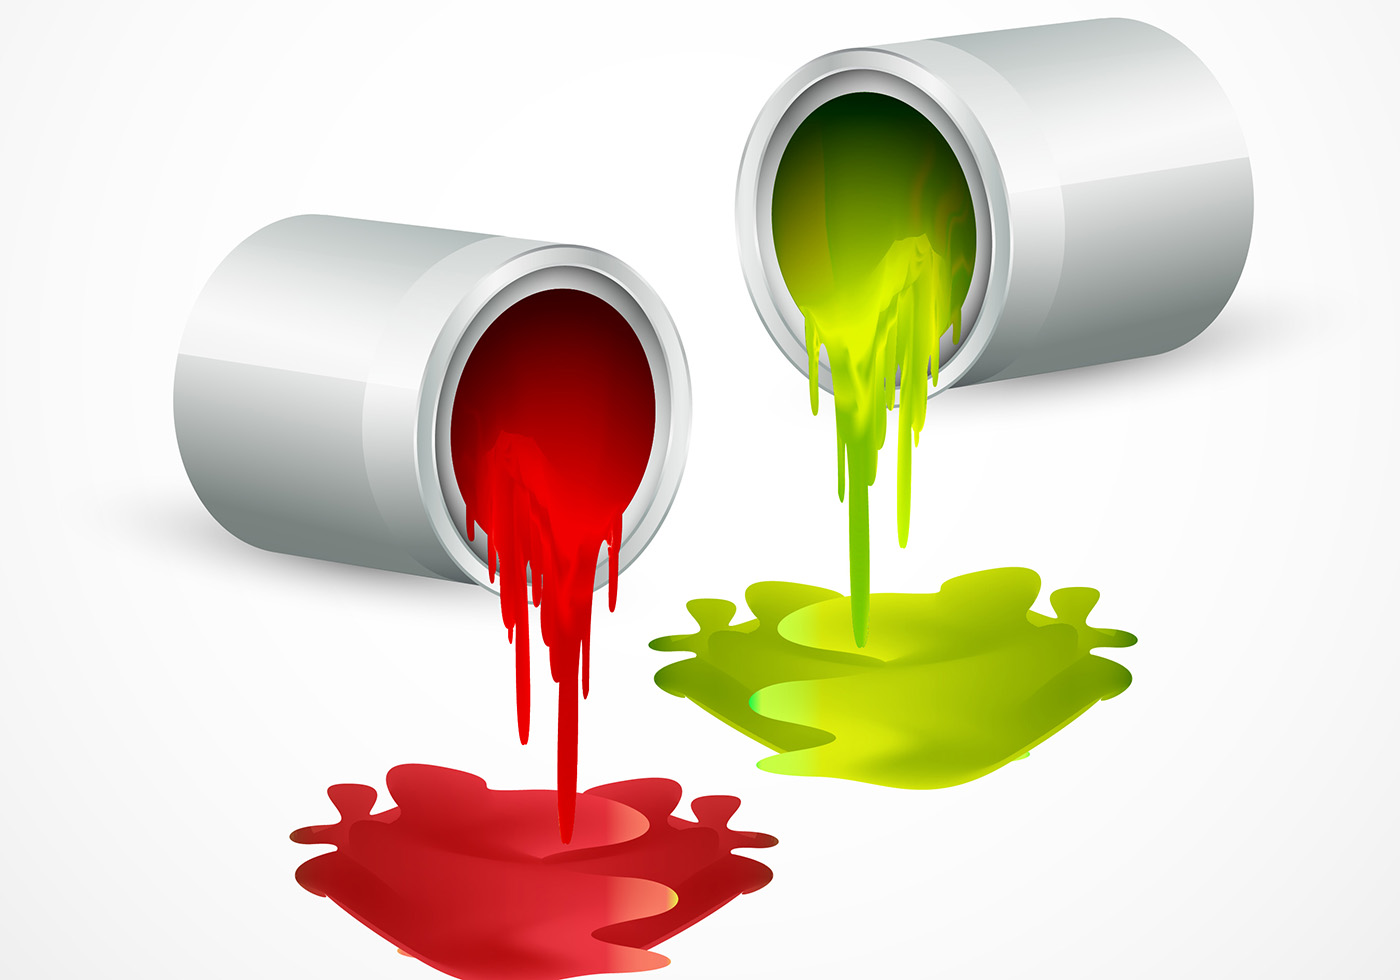 Paint Bucket Vectors with Colors  Download Free Vector Art, Stock